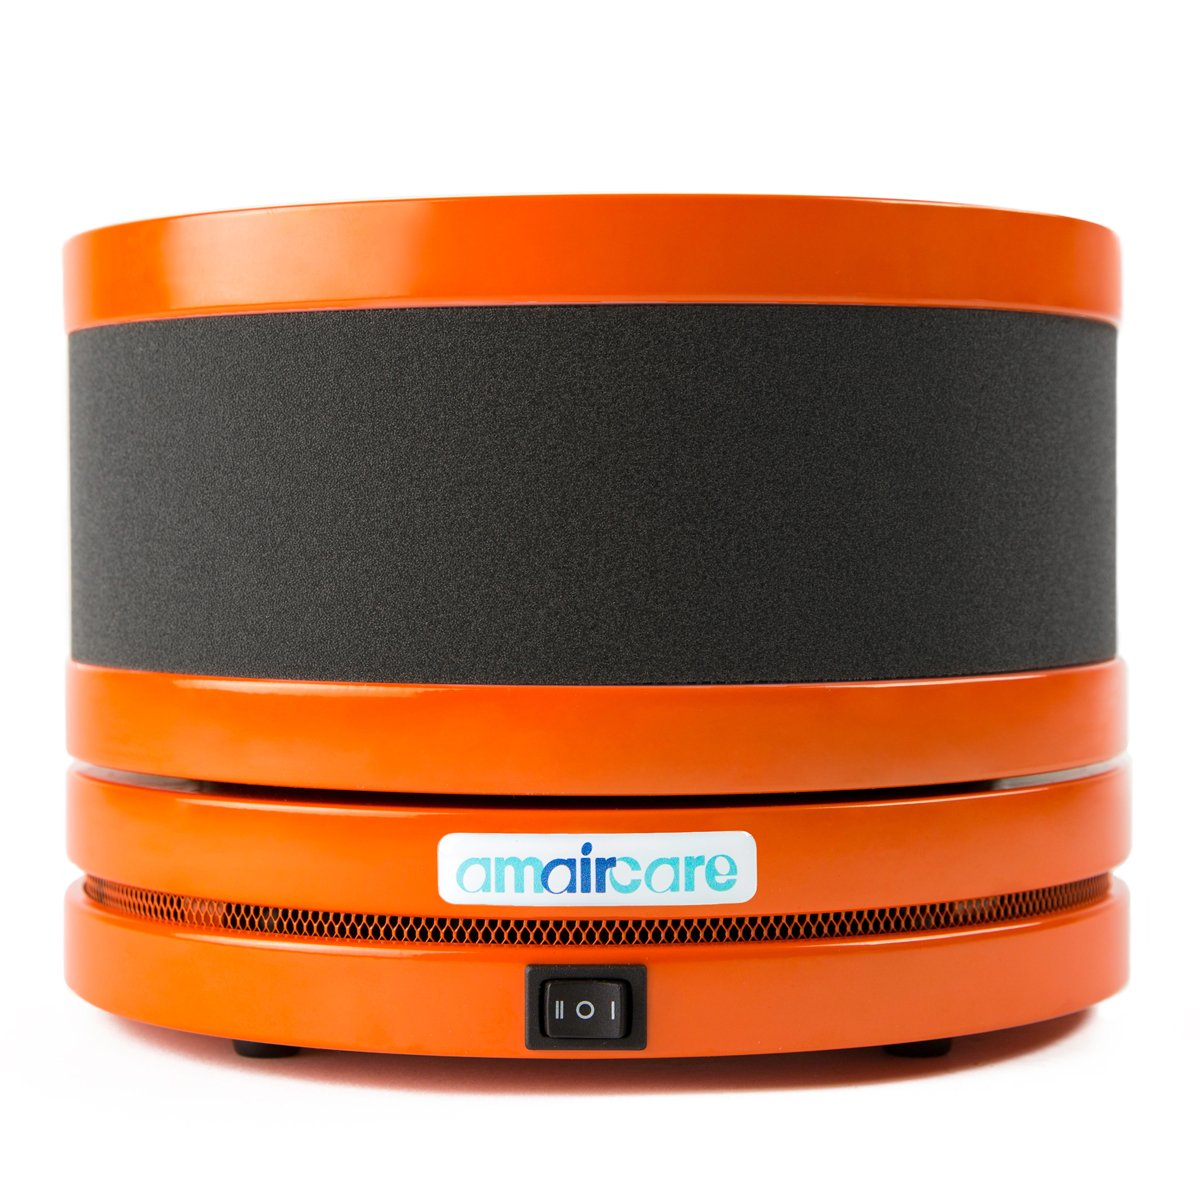 Image of Amaircare 02-A-3KOR-01 Roomaid Mini with Formaldezorb VOC, Orange Ventilation Fans